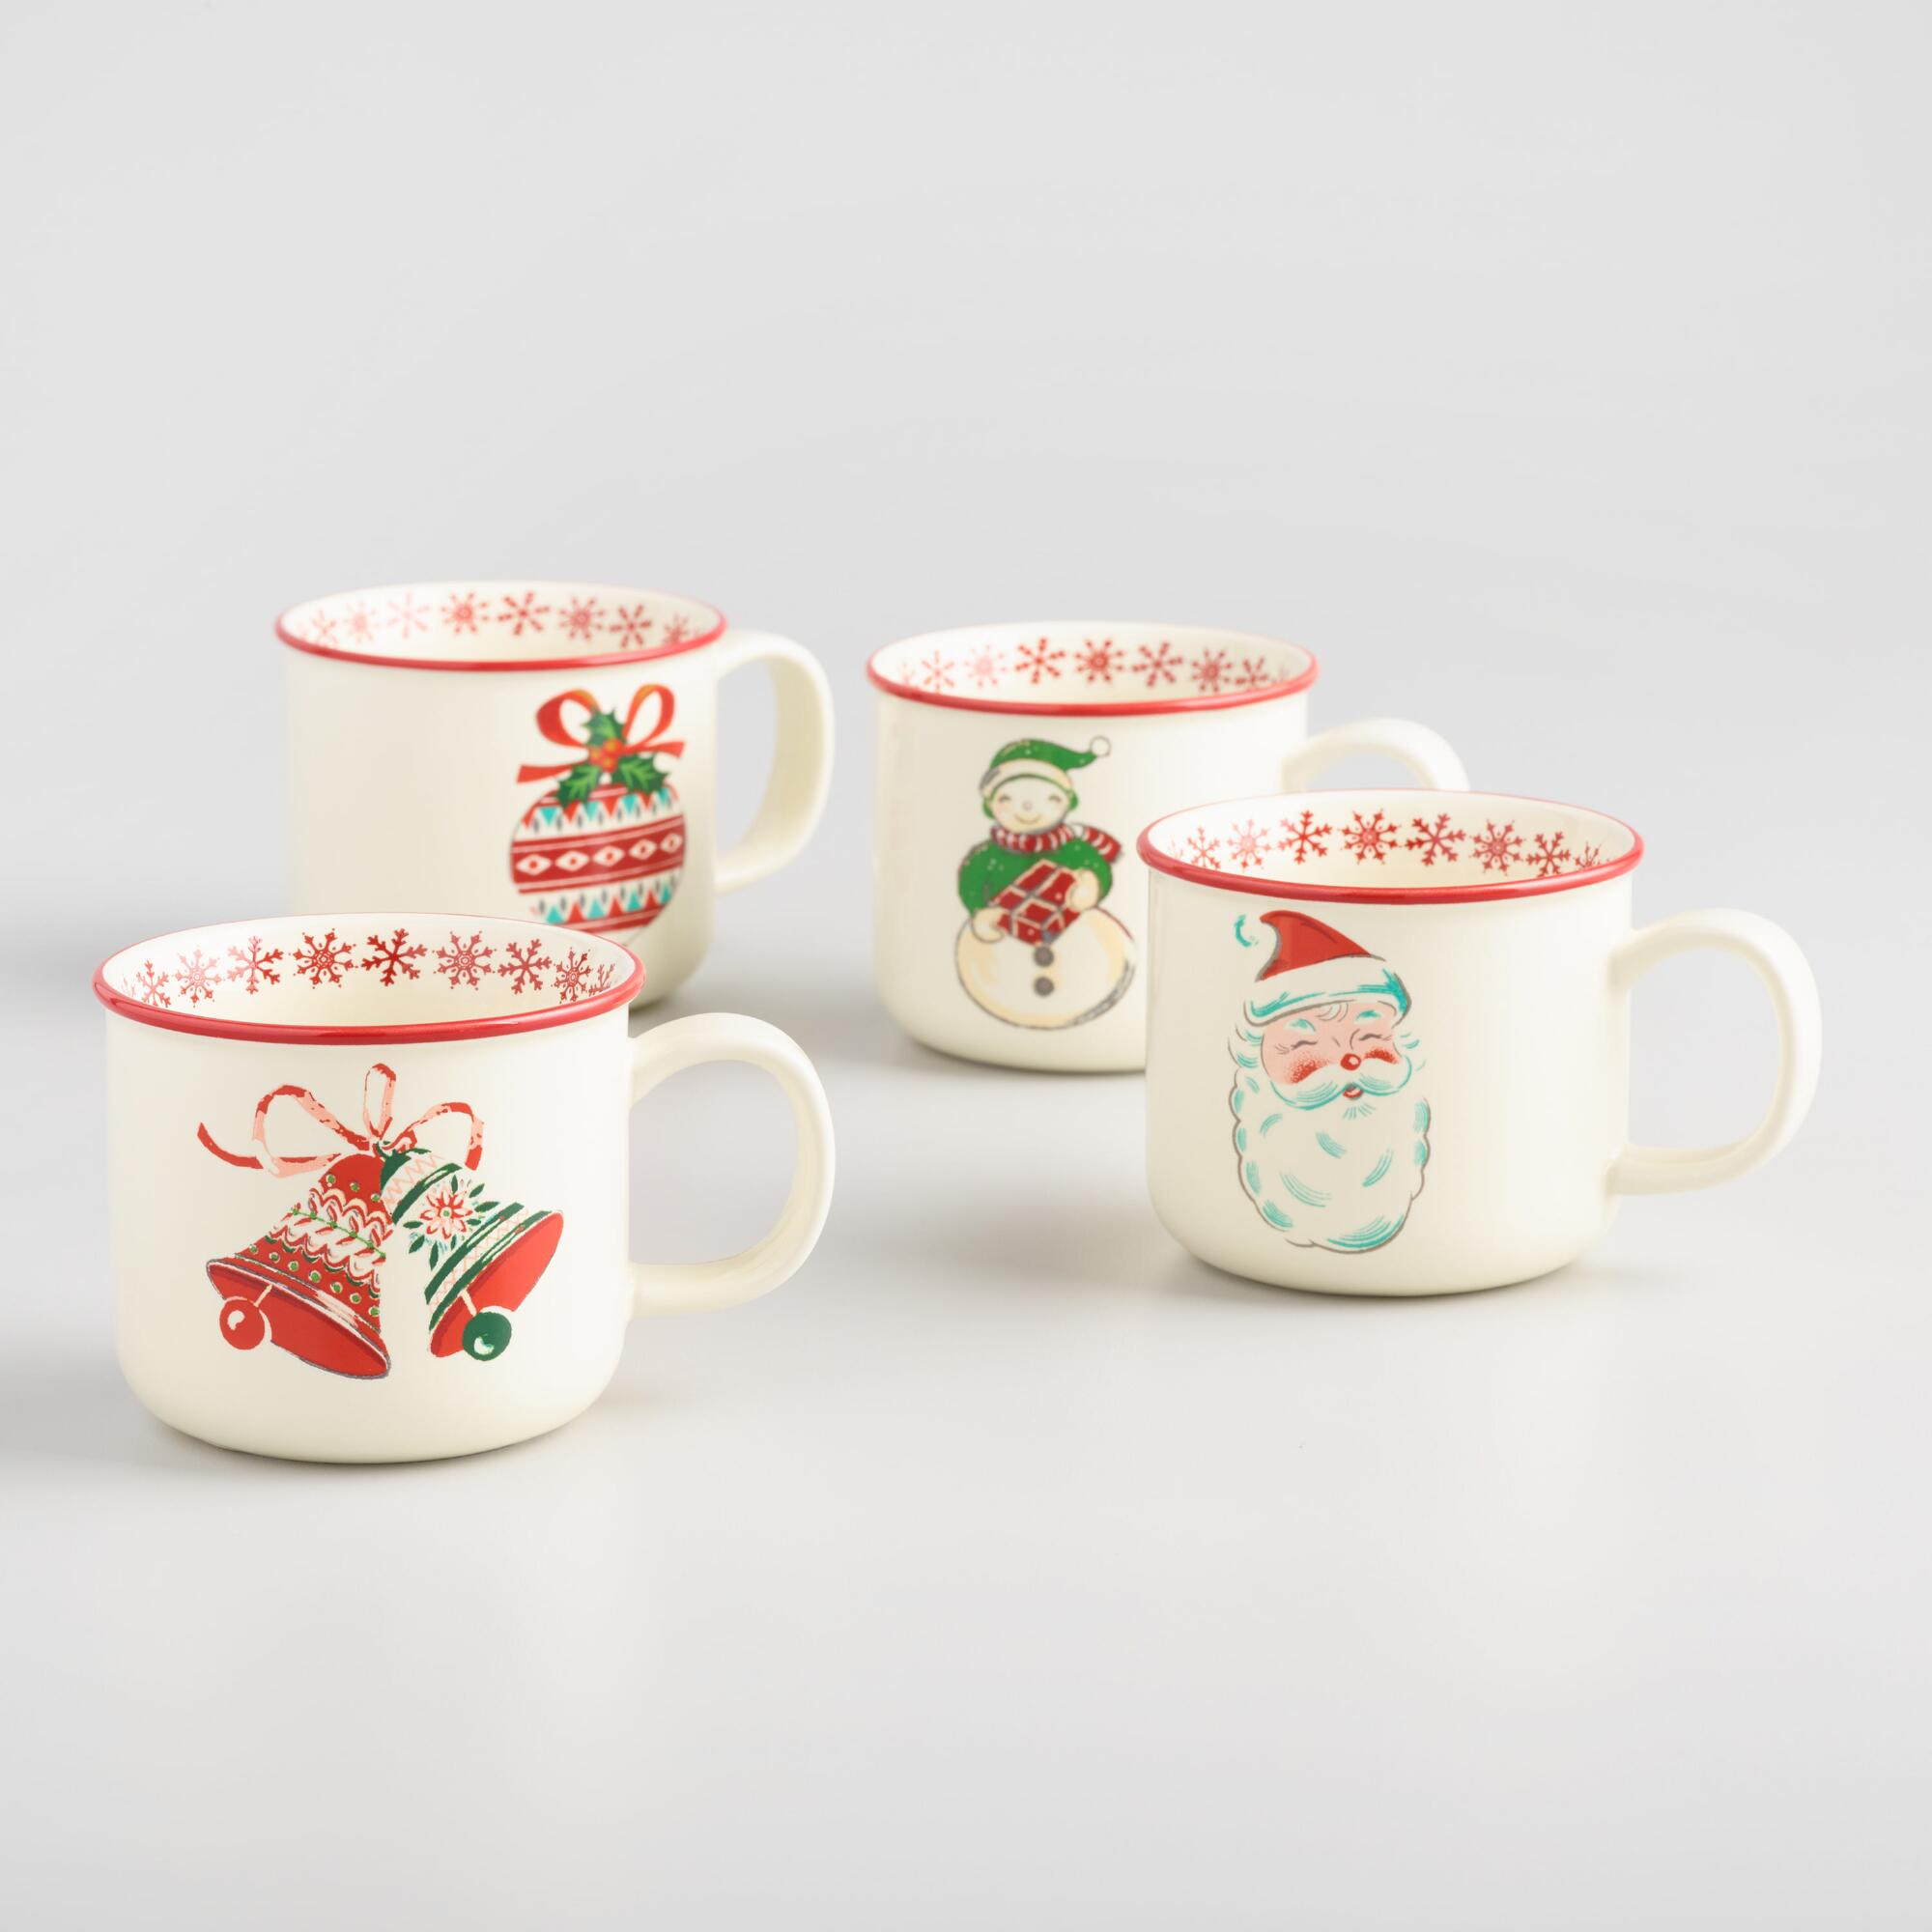 Retro Christmas Coffee Mugs Set of 4 | World Market